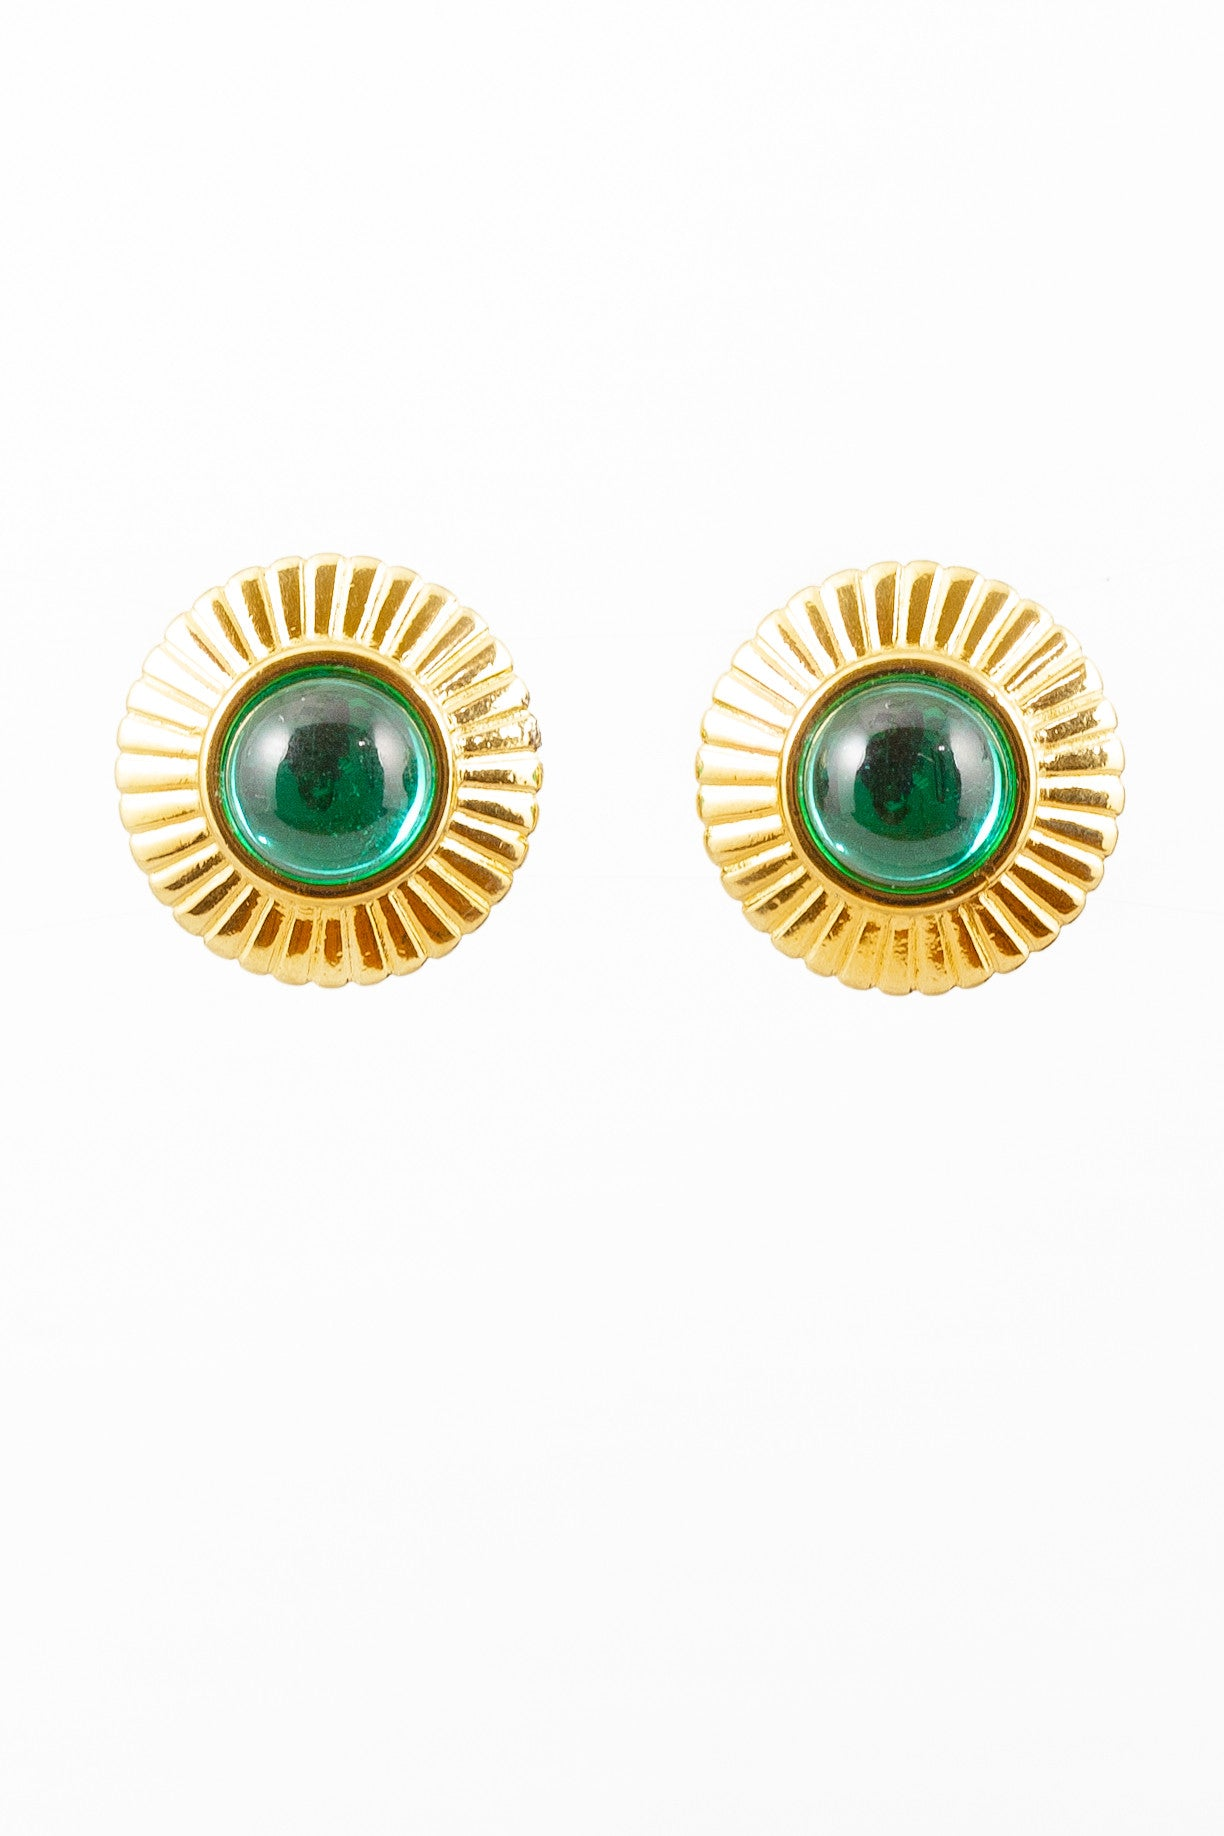 60's__Monet__Gold Set Emerald Clips